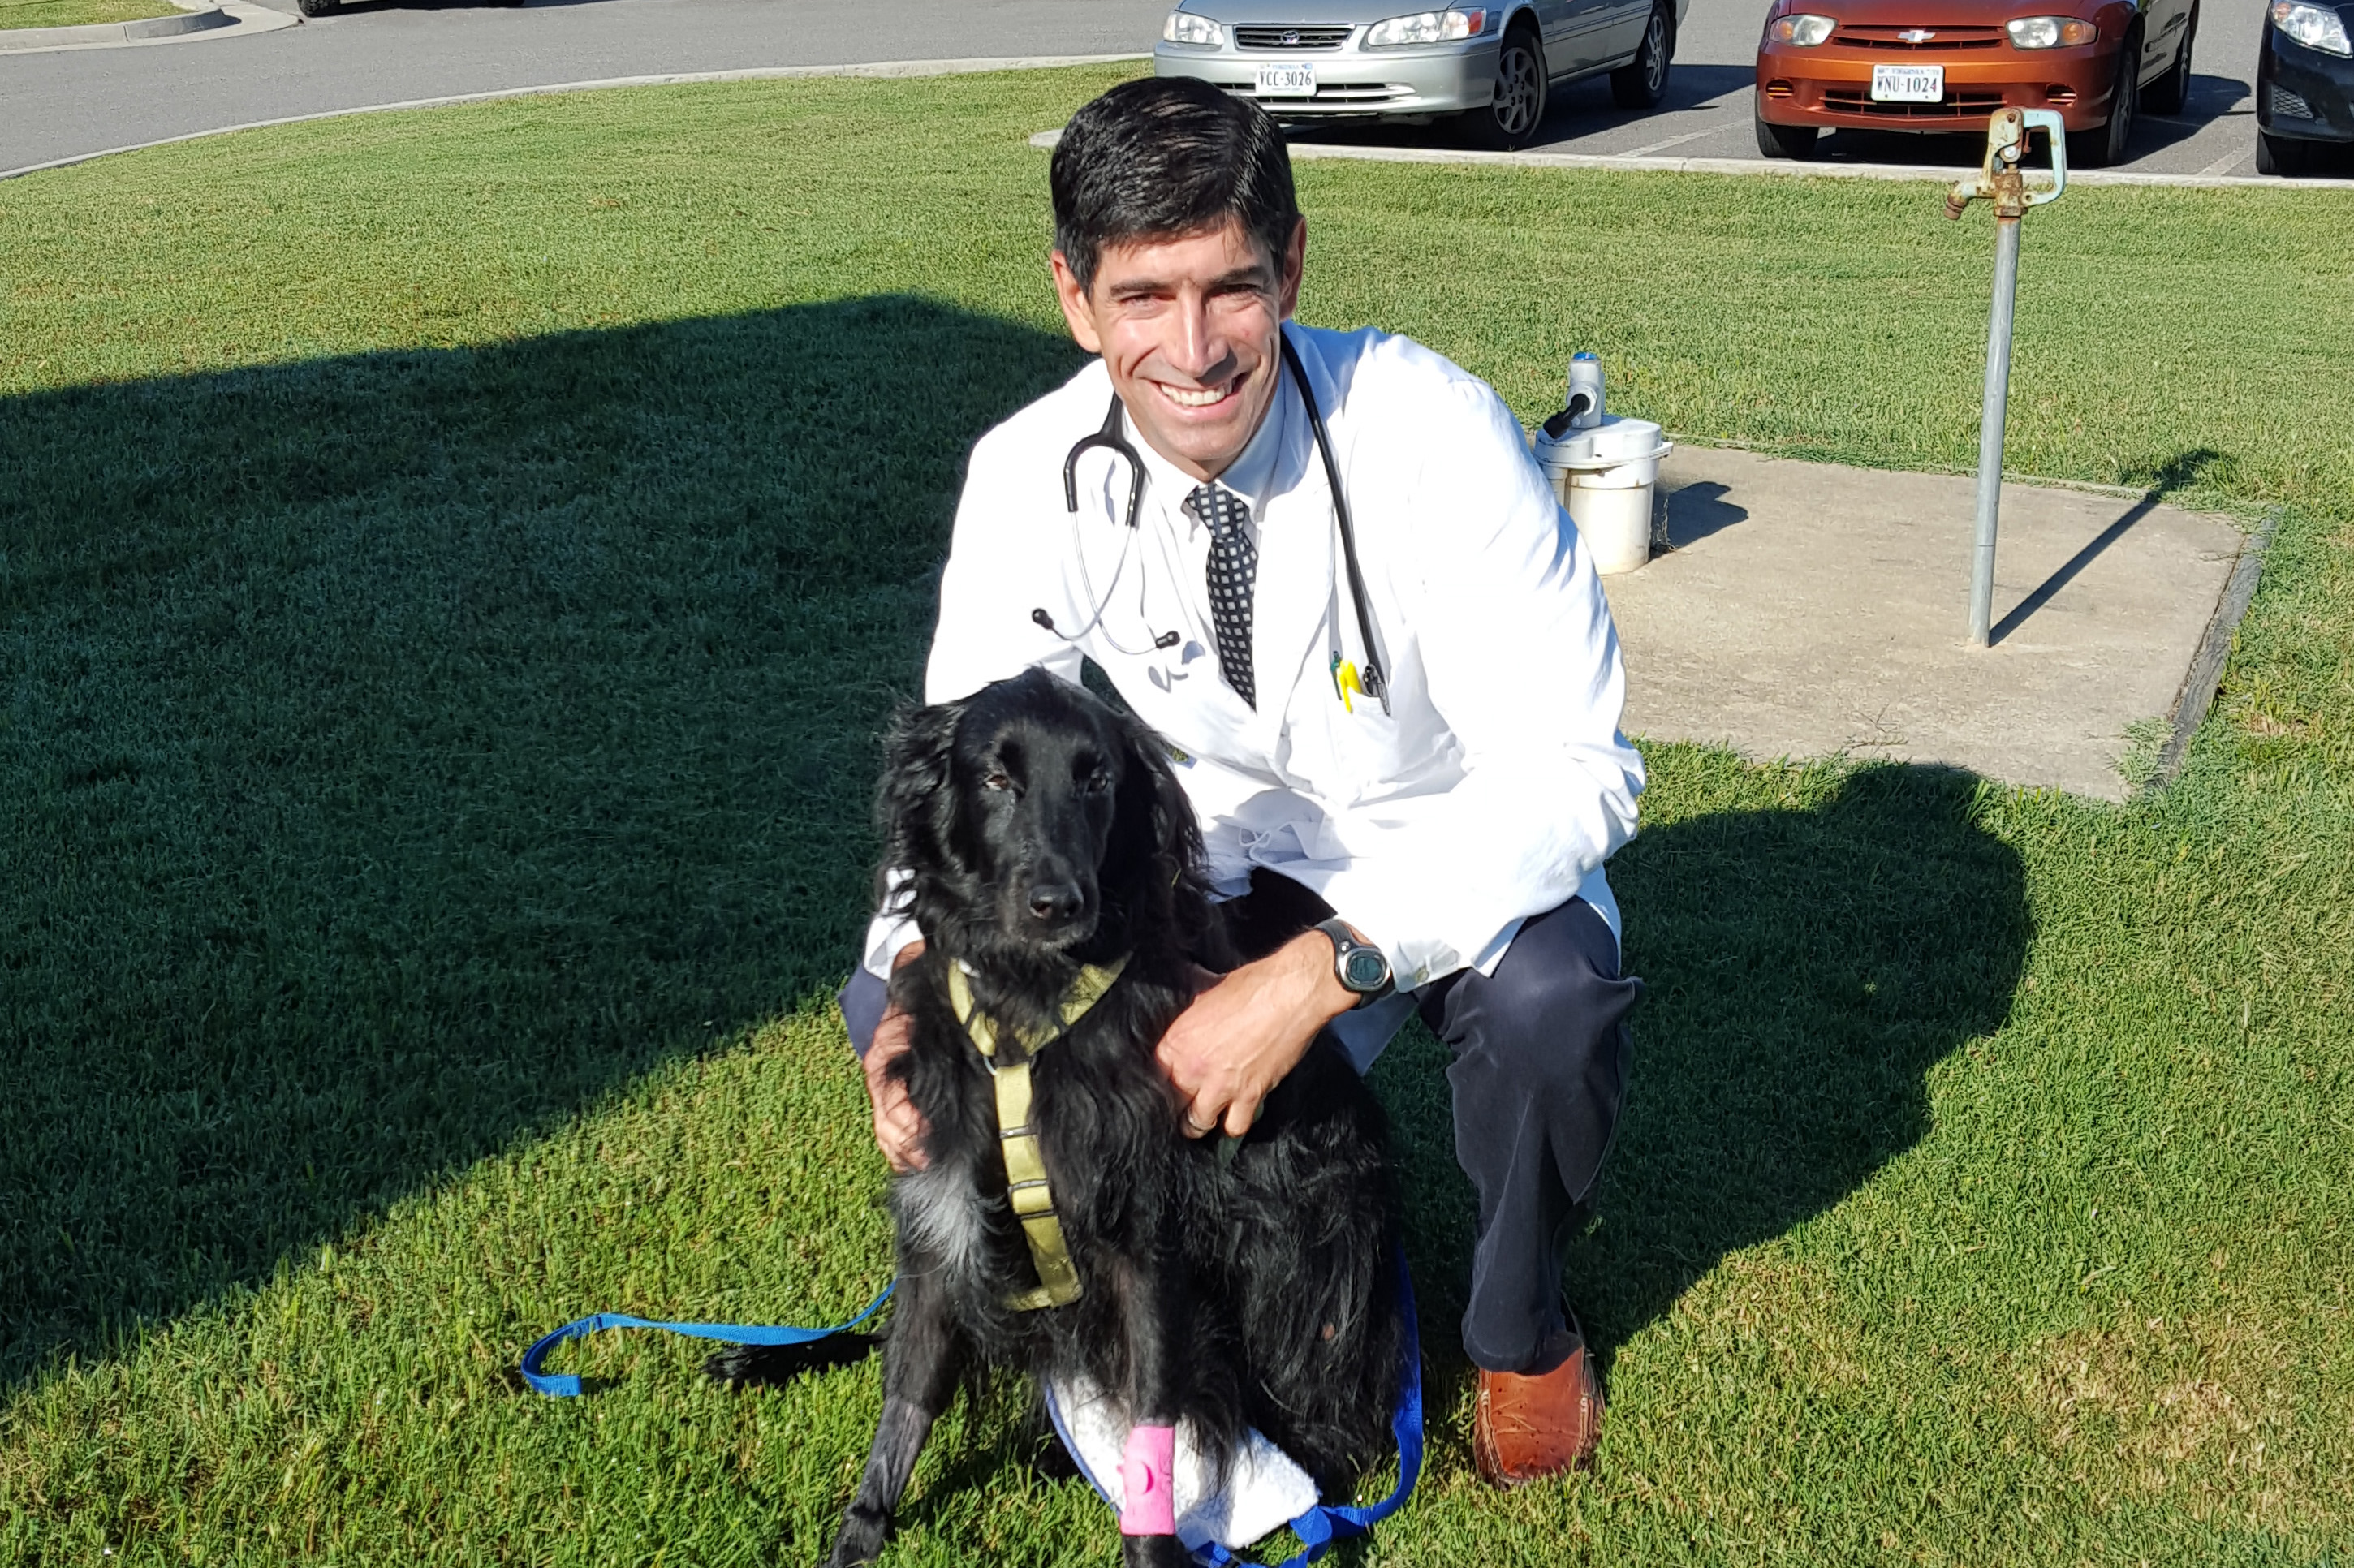 Dr. Clarke with Jett outside in the yard